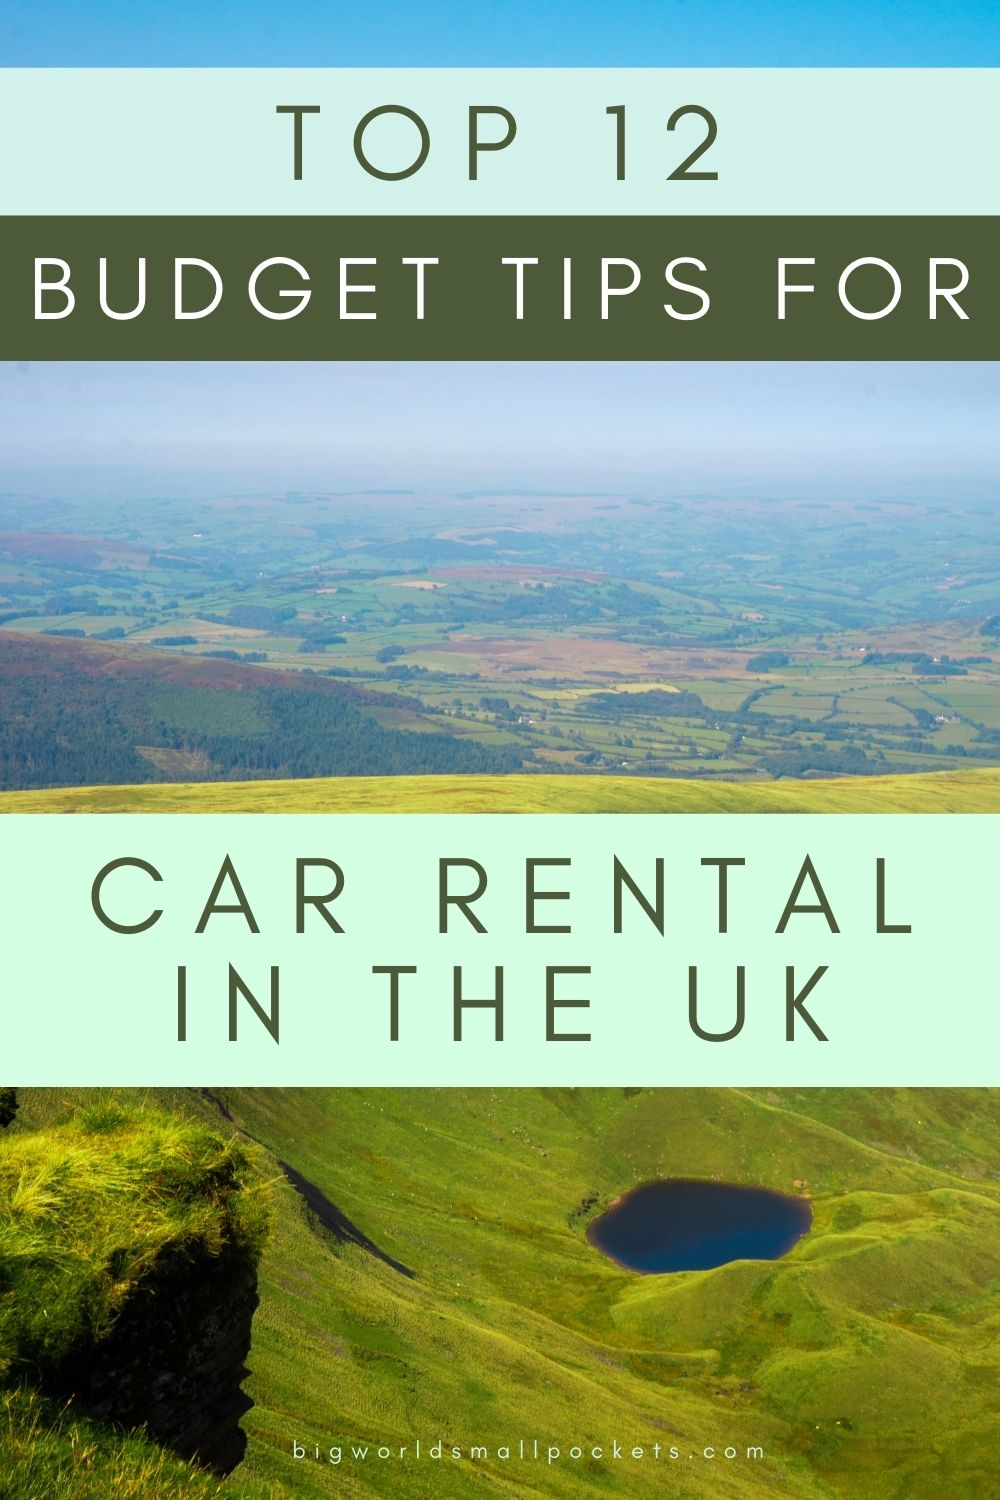 Top 12 Budget Tips for Renting a Car in the UK